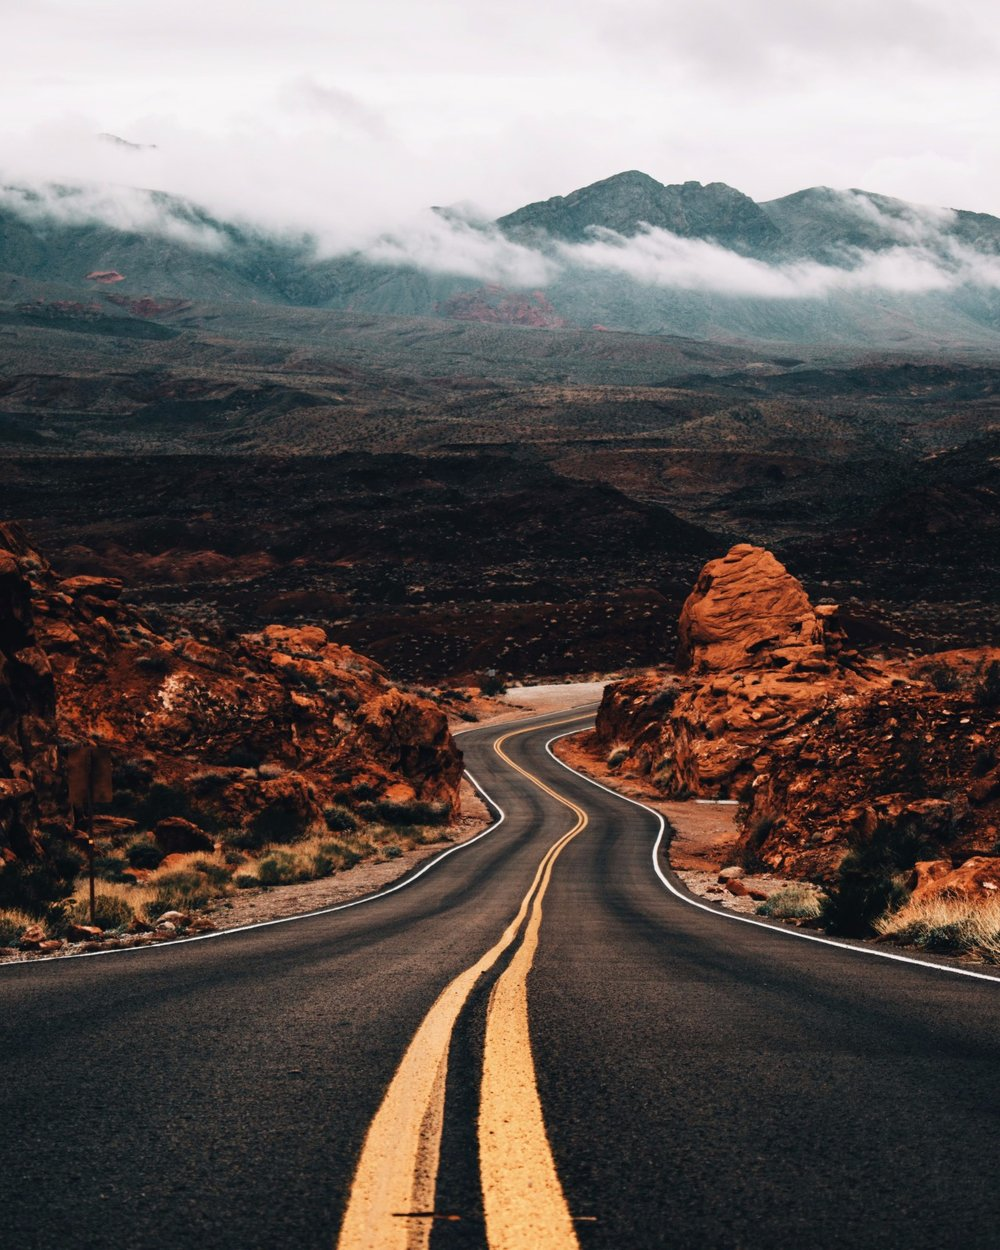 Grand Drive For Good - 2020Have you ever dreamed about a once-in-a-lifetime trip around the globe? Well, dream no longer. We are taking you to the most pristine destinations on earth. Join us on this unforgettable journey, as we take in the most spectacular landscapes, from all over the world.